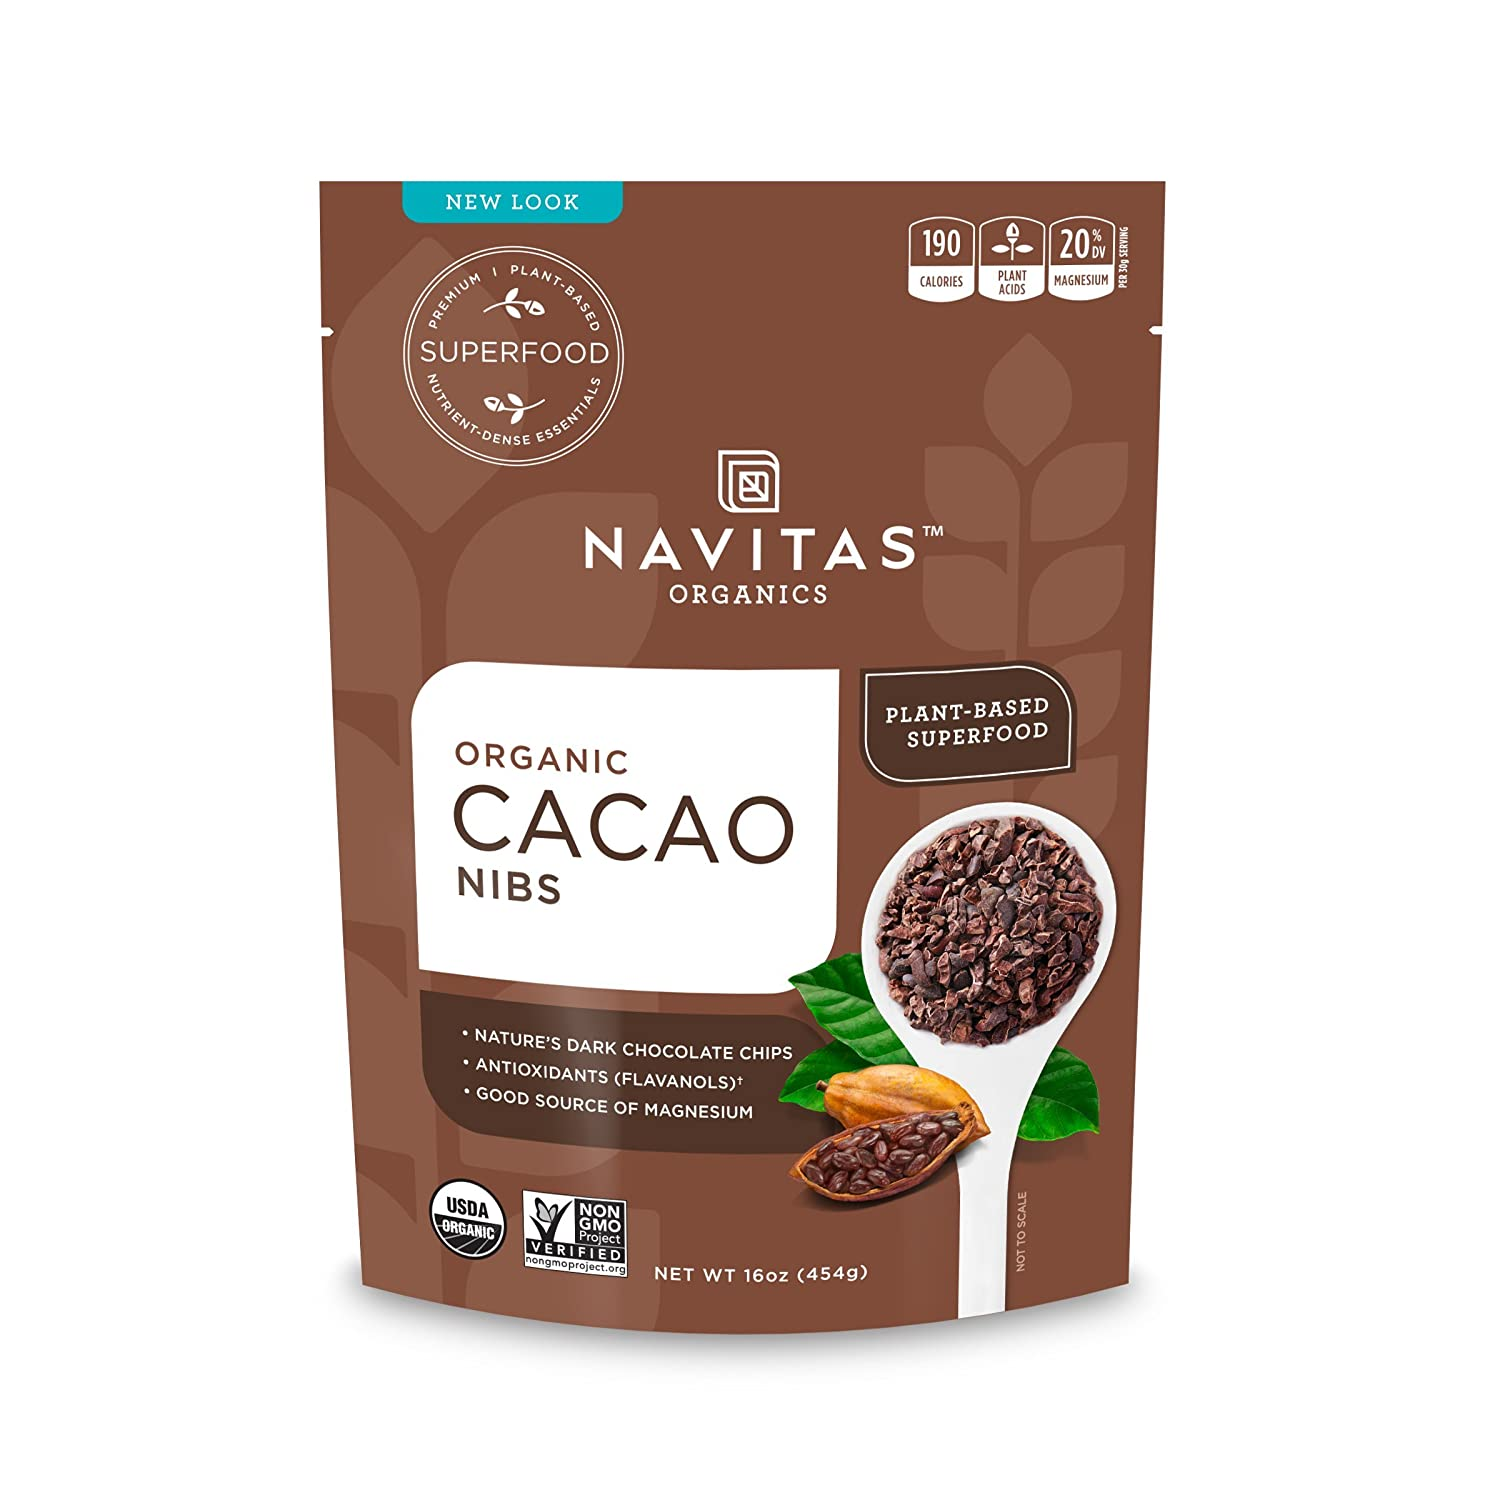 Amazon.com : Navitas Organics Cacao Nibs, 16 oz. Bags (Pack of 2) -  Organic, Non-GMO, Fair Trade, Gluten-Free : Baking Cocoa : Grocery &  Gourmet Food